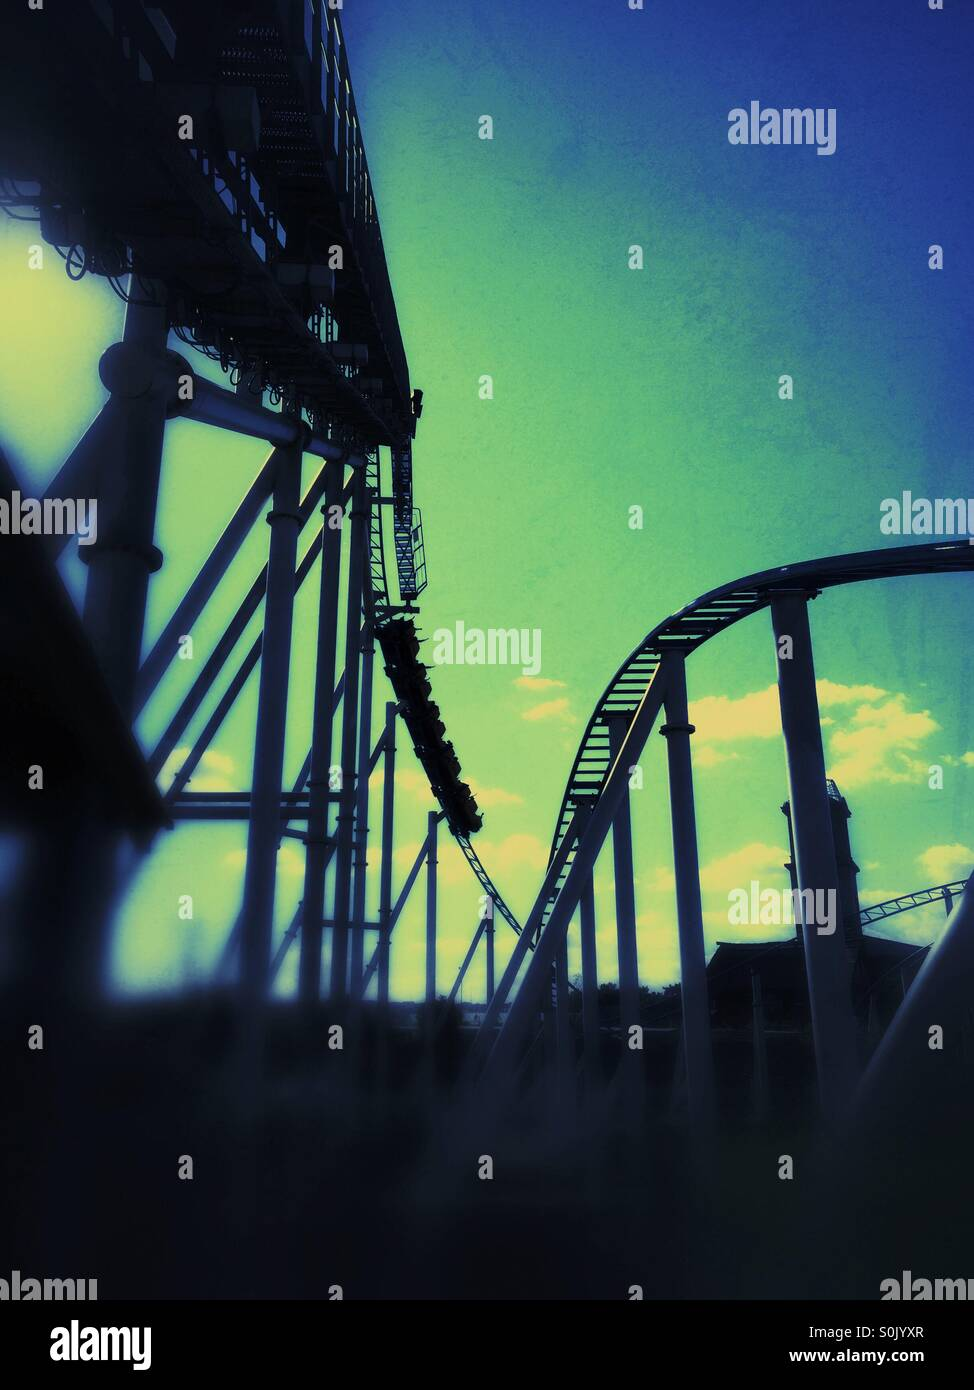 Roller coaster Photo Stock